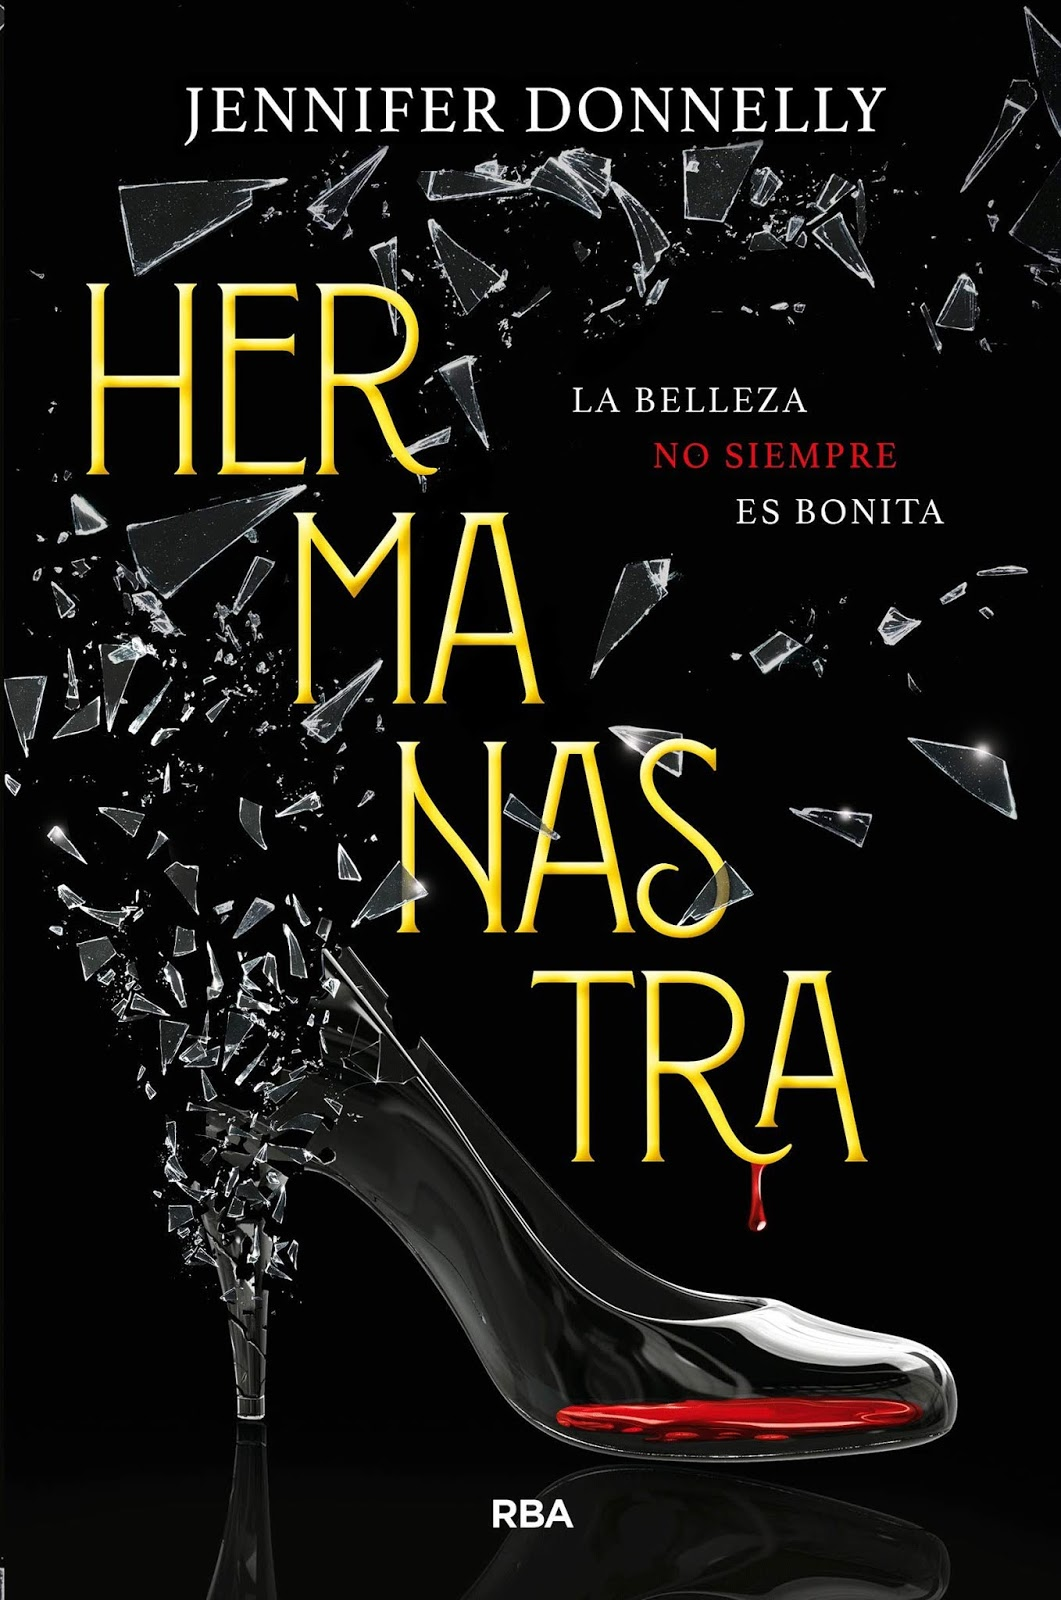 Hermanastras de Jennifer Donnelly